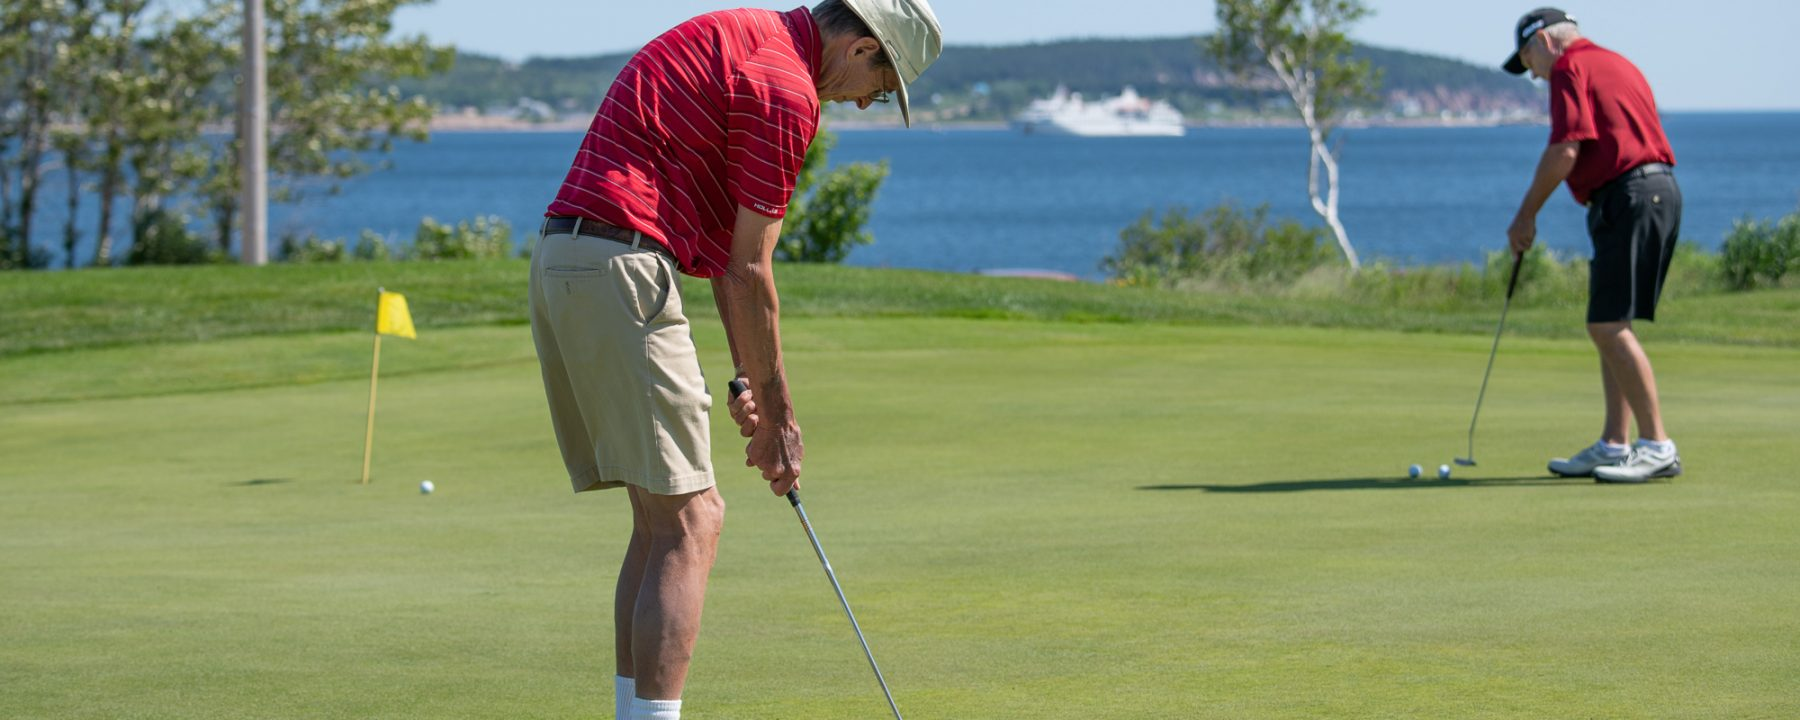 Golfer hits the link in Ingonish, NS